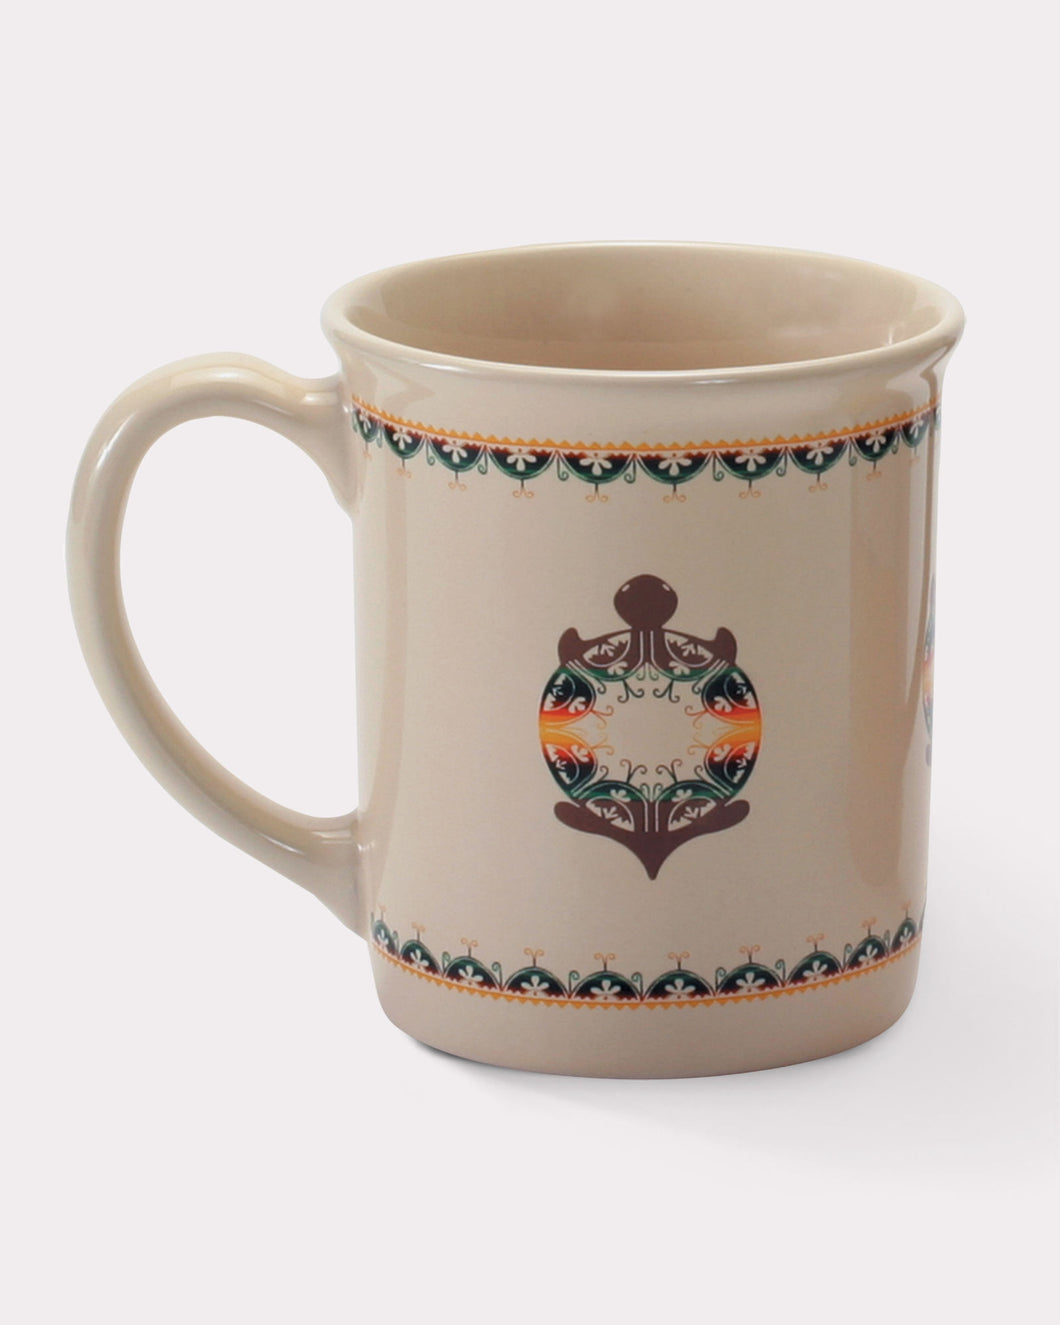 Pendleton Woolen Mills Legendary mug turtle creation Native American heritage legend tradition coffee tea cup soup mug ceramic gift large